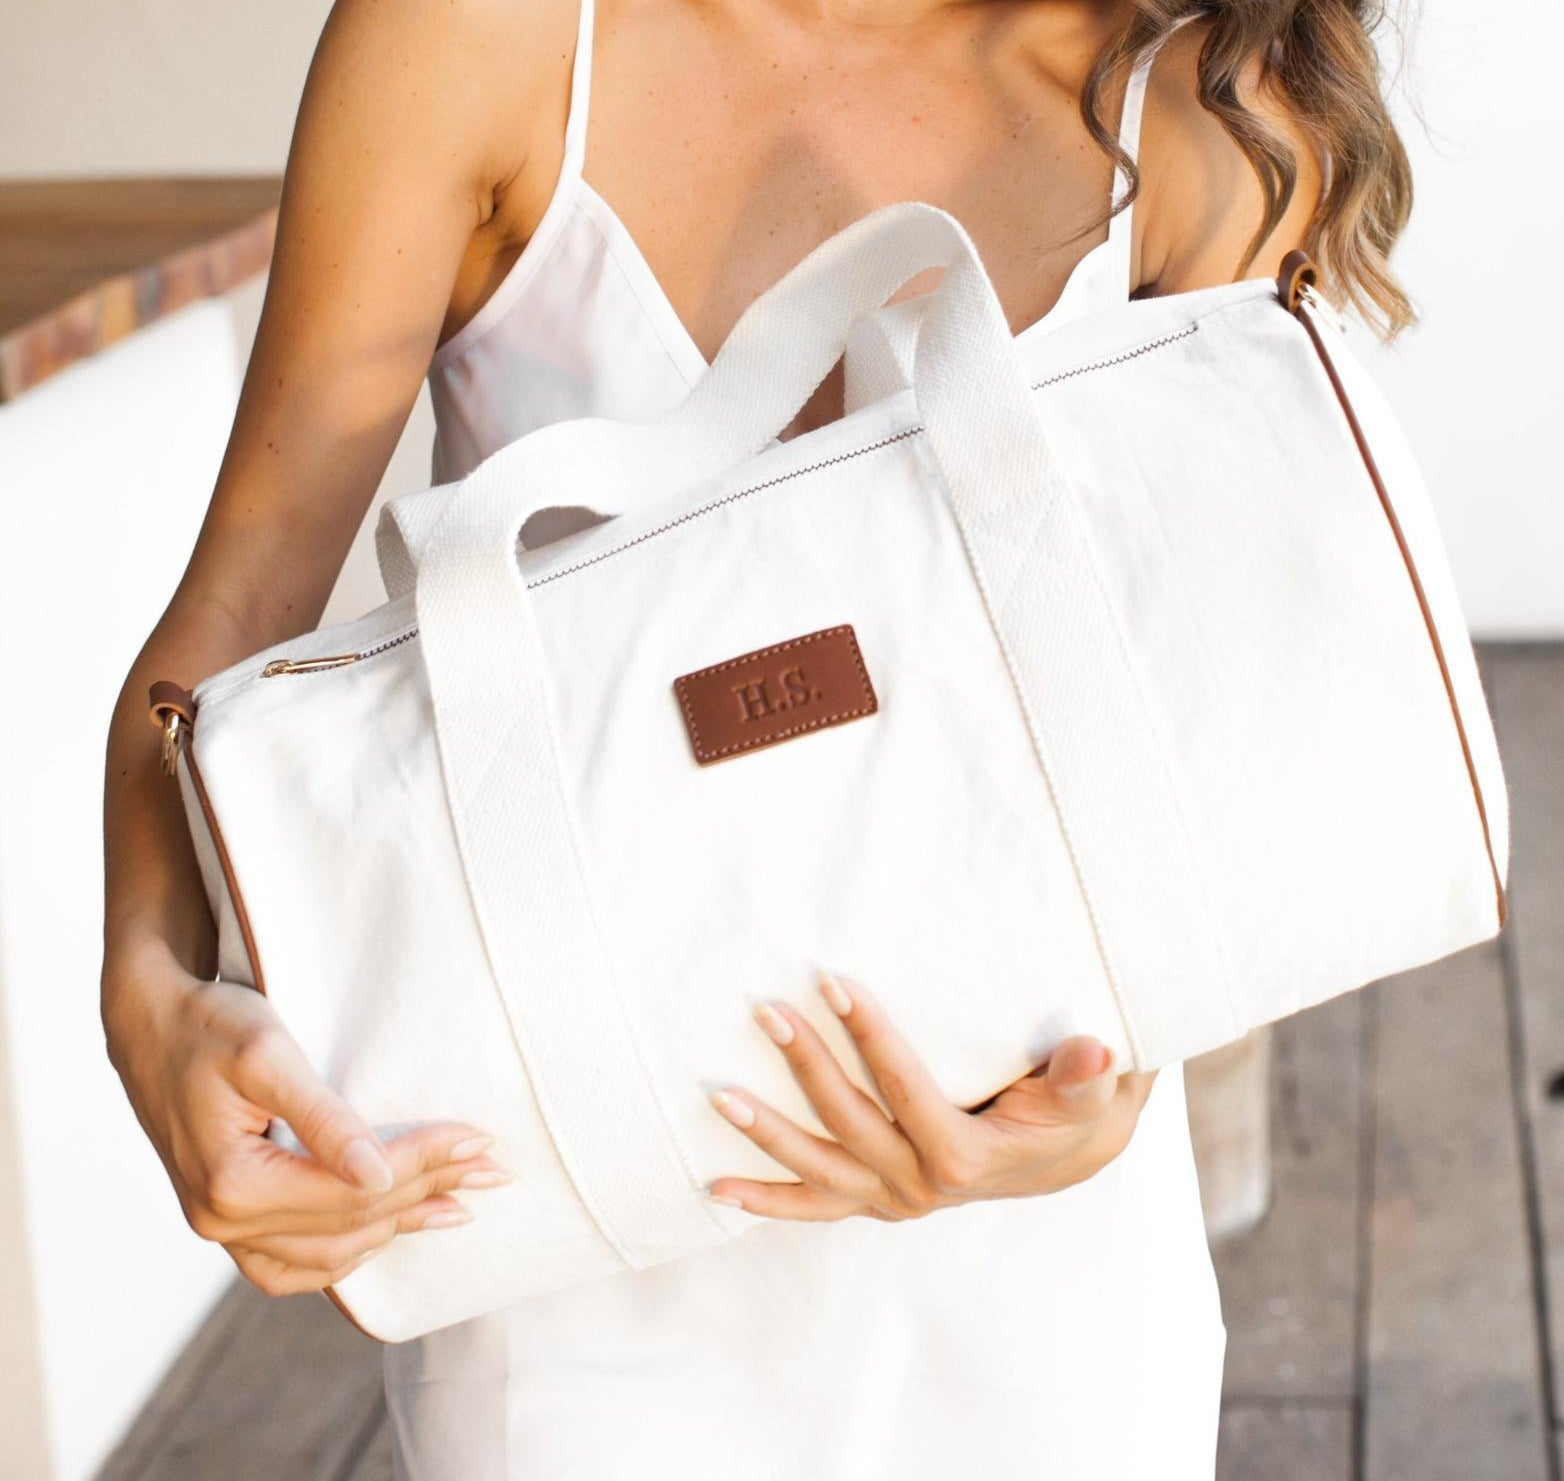 Model is holding a white duffel bag with a leather monogrammed label on the front